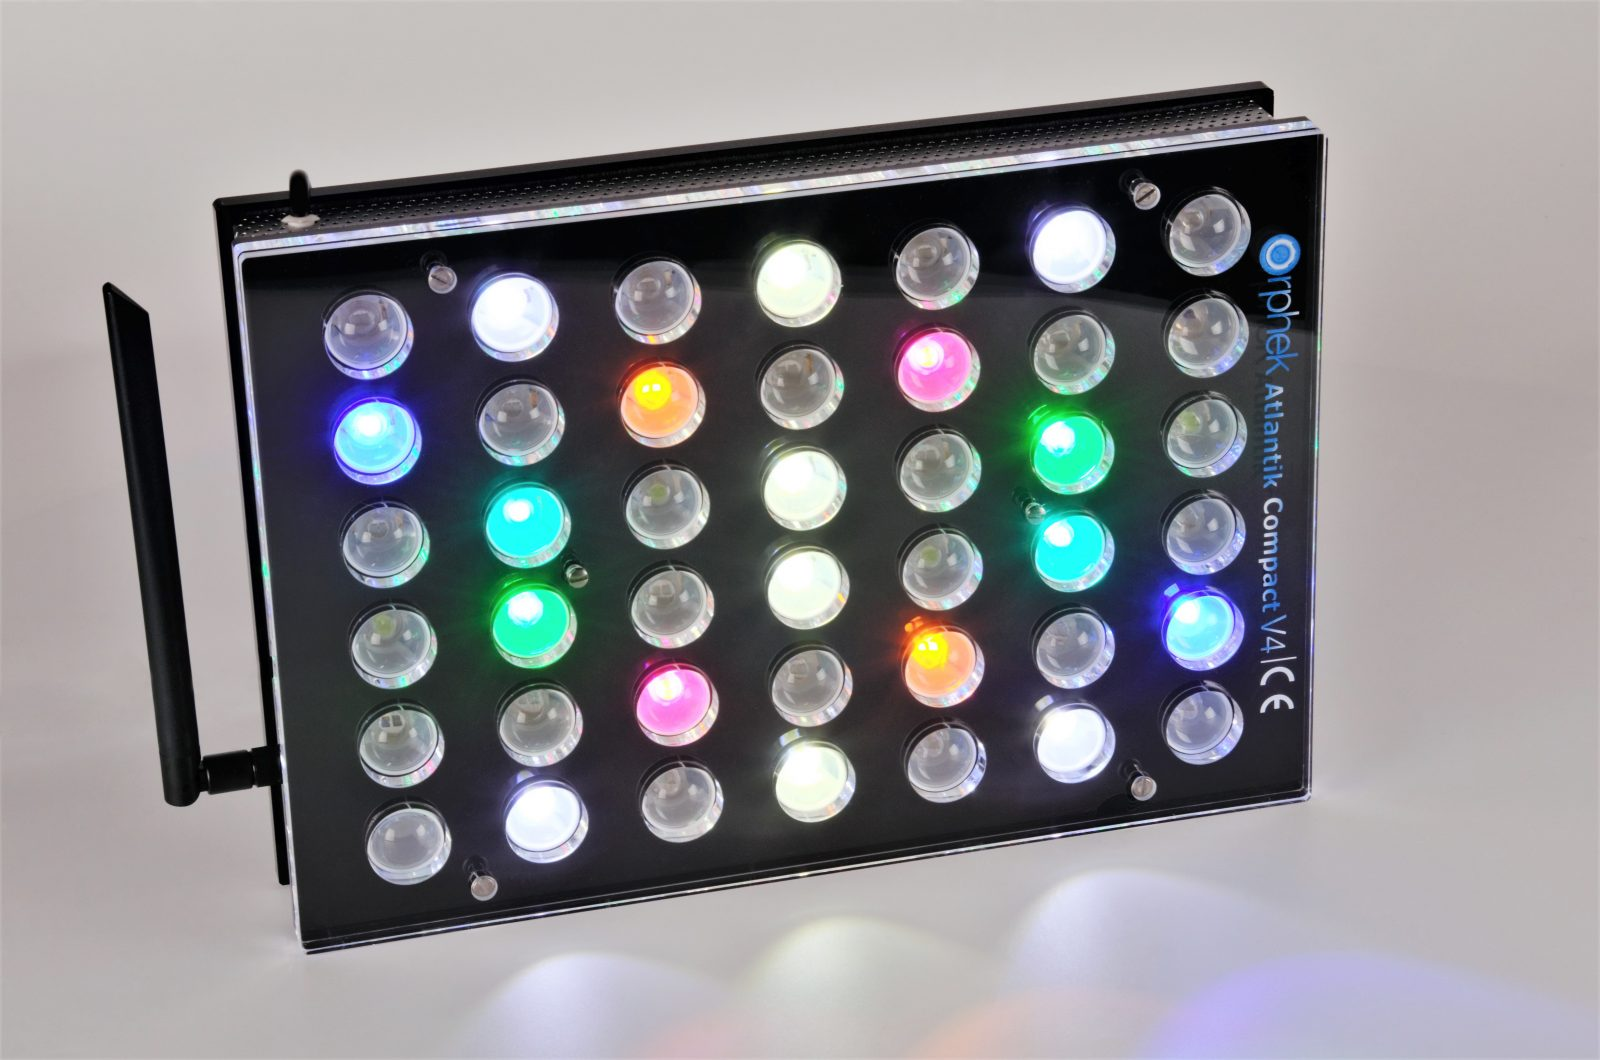 Orphek-Aquarium-LED-Lighting-Atlantik -Compact-V4-light -on -channel 1 + 4